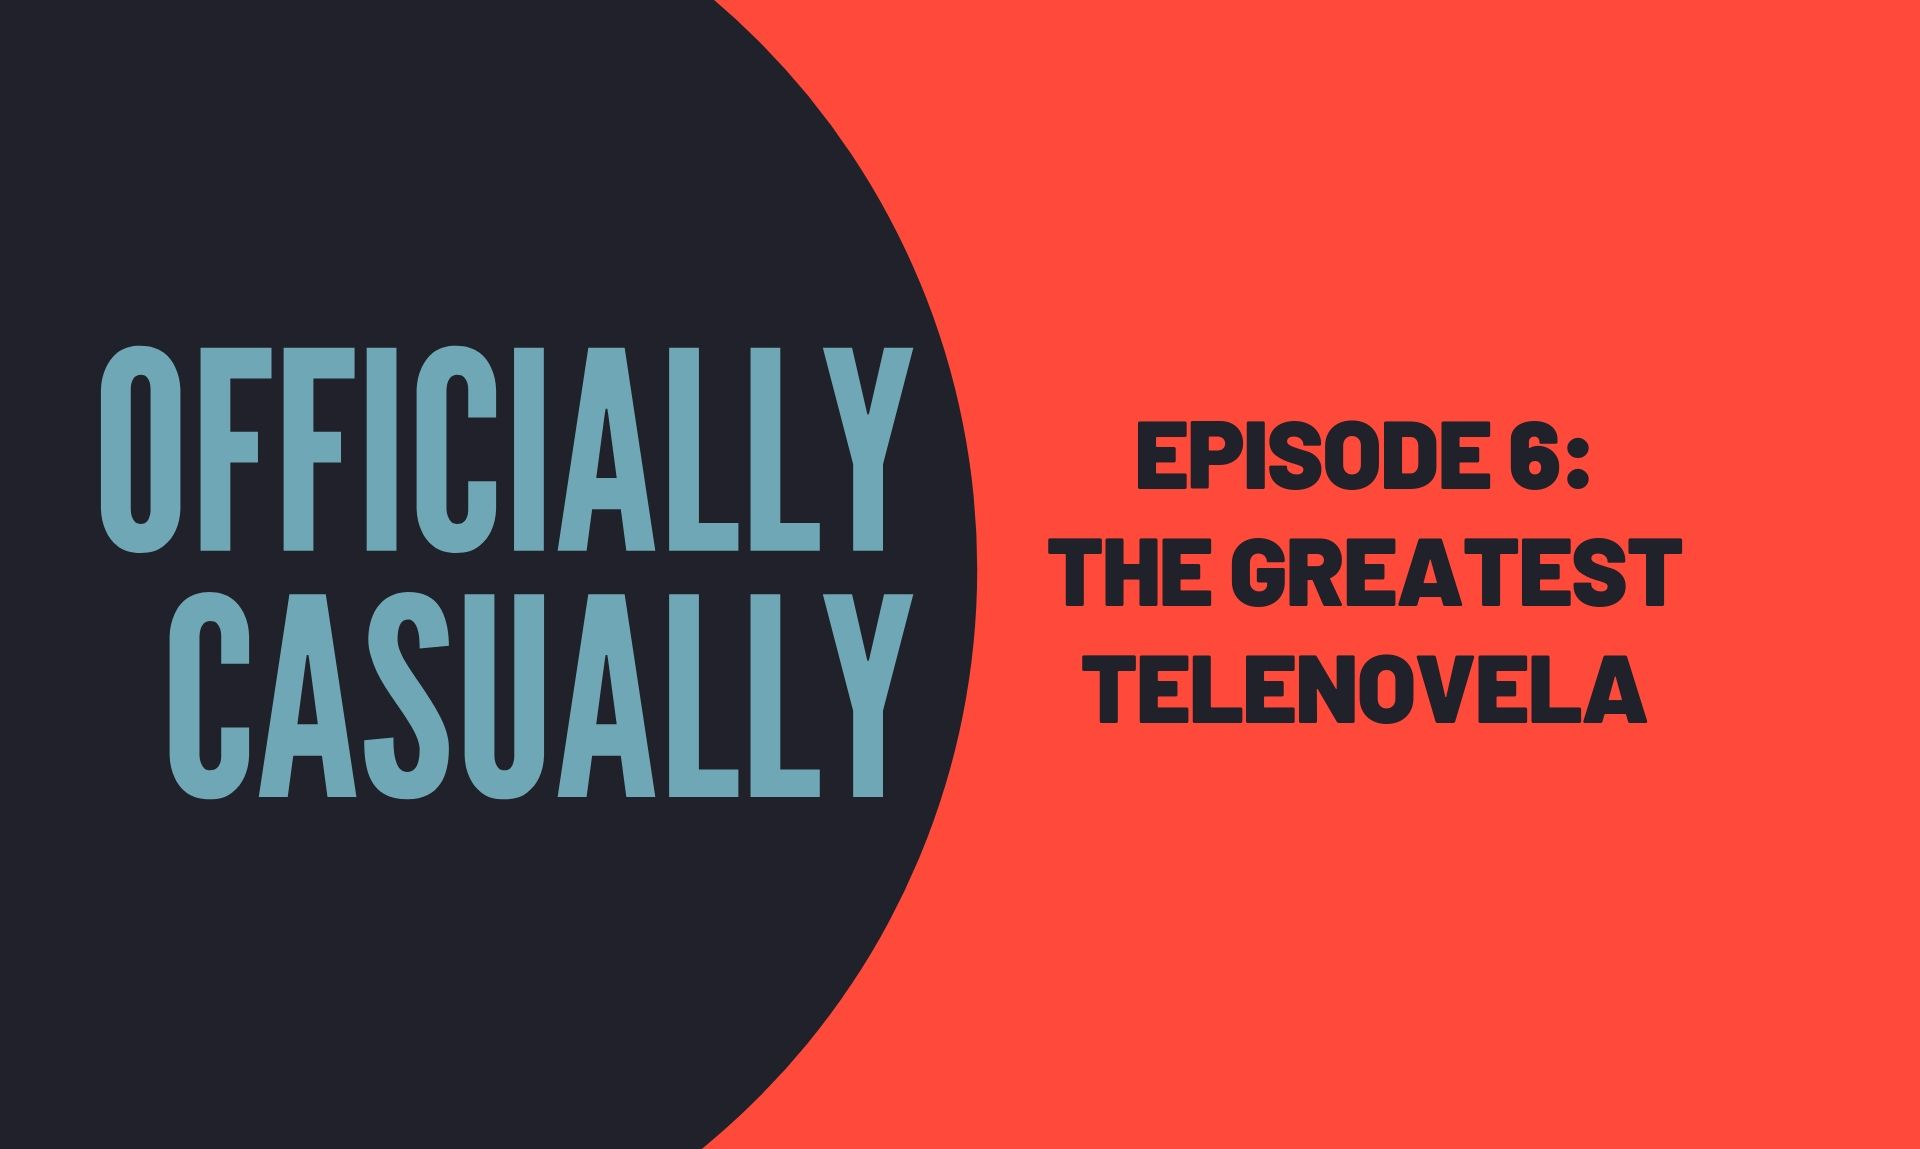 #6 EPISODE - THE GREATEST TELENOVELA